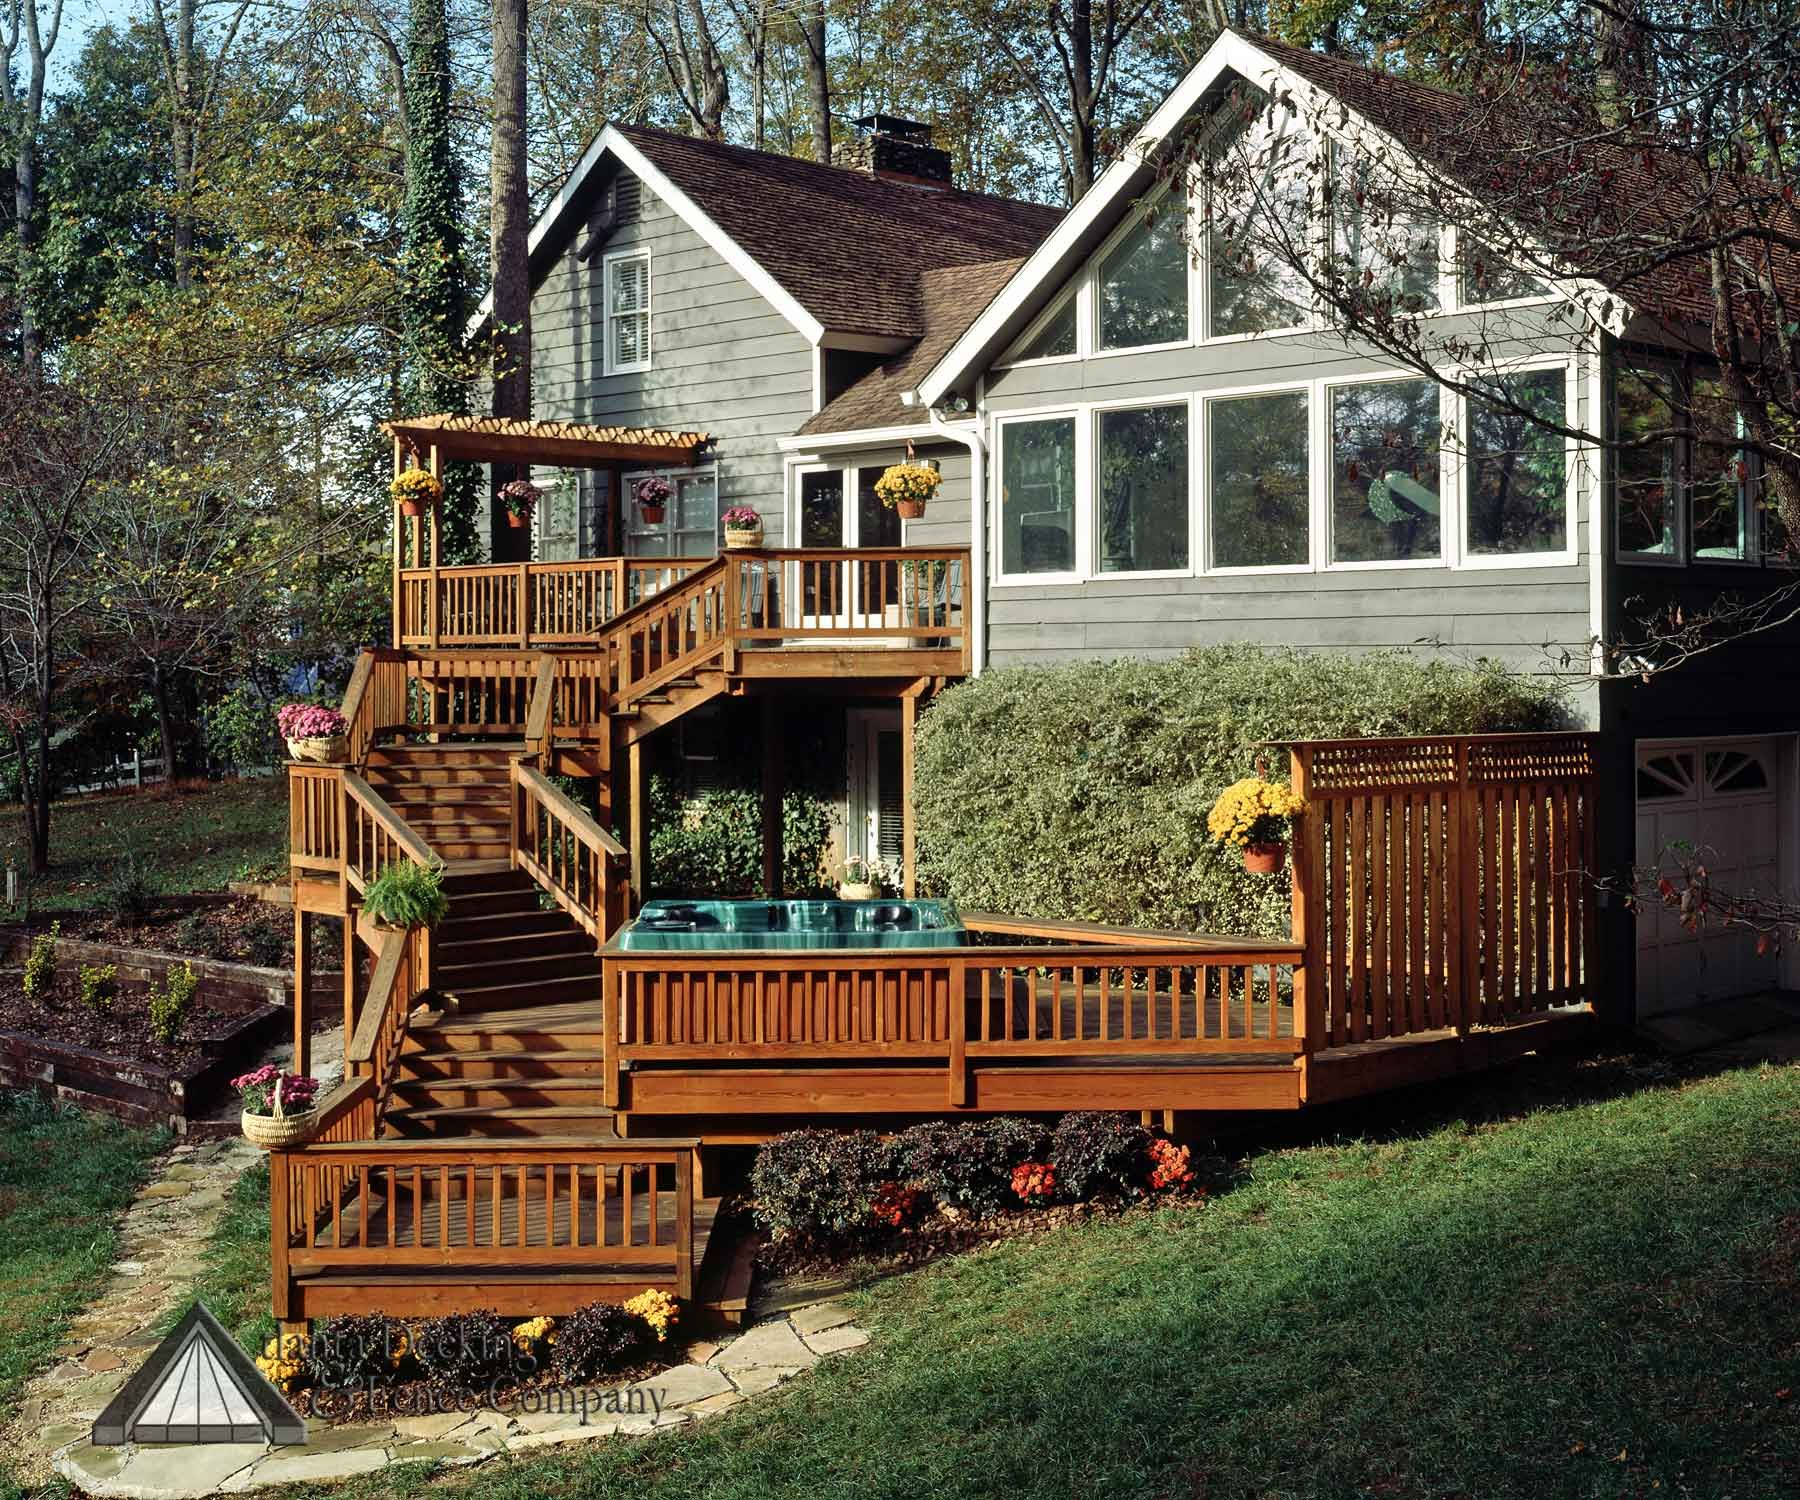 27 Awesome Sun Deck Designs: Pictures Of Multi-level Deck From